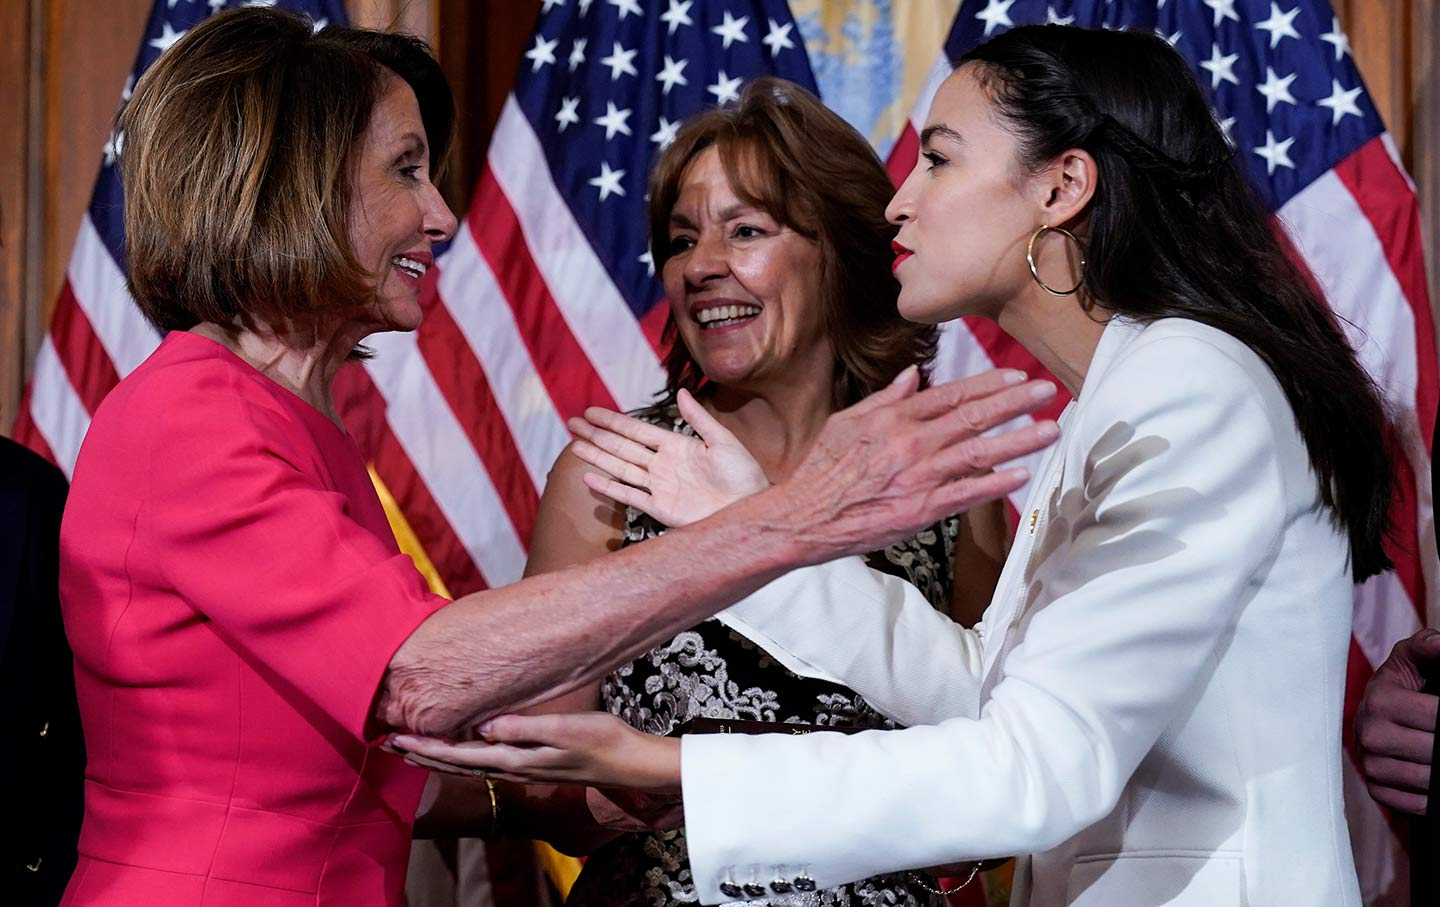 Congressional Dems 'Exasperated' With Ocasio-Cortez: 'Don't Attack Your Own People'